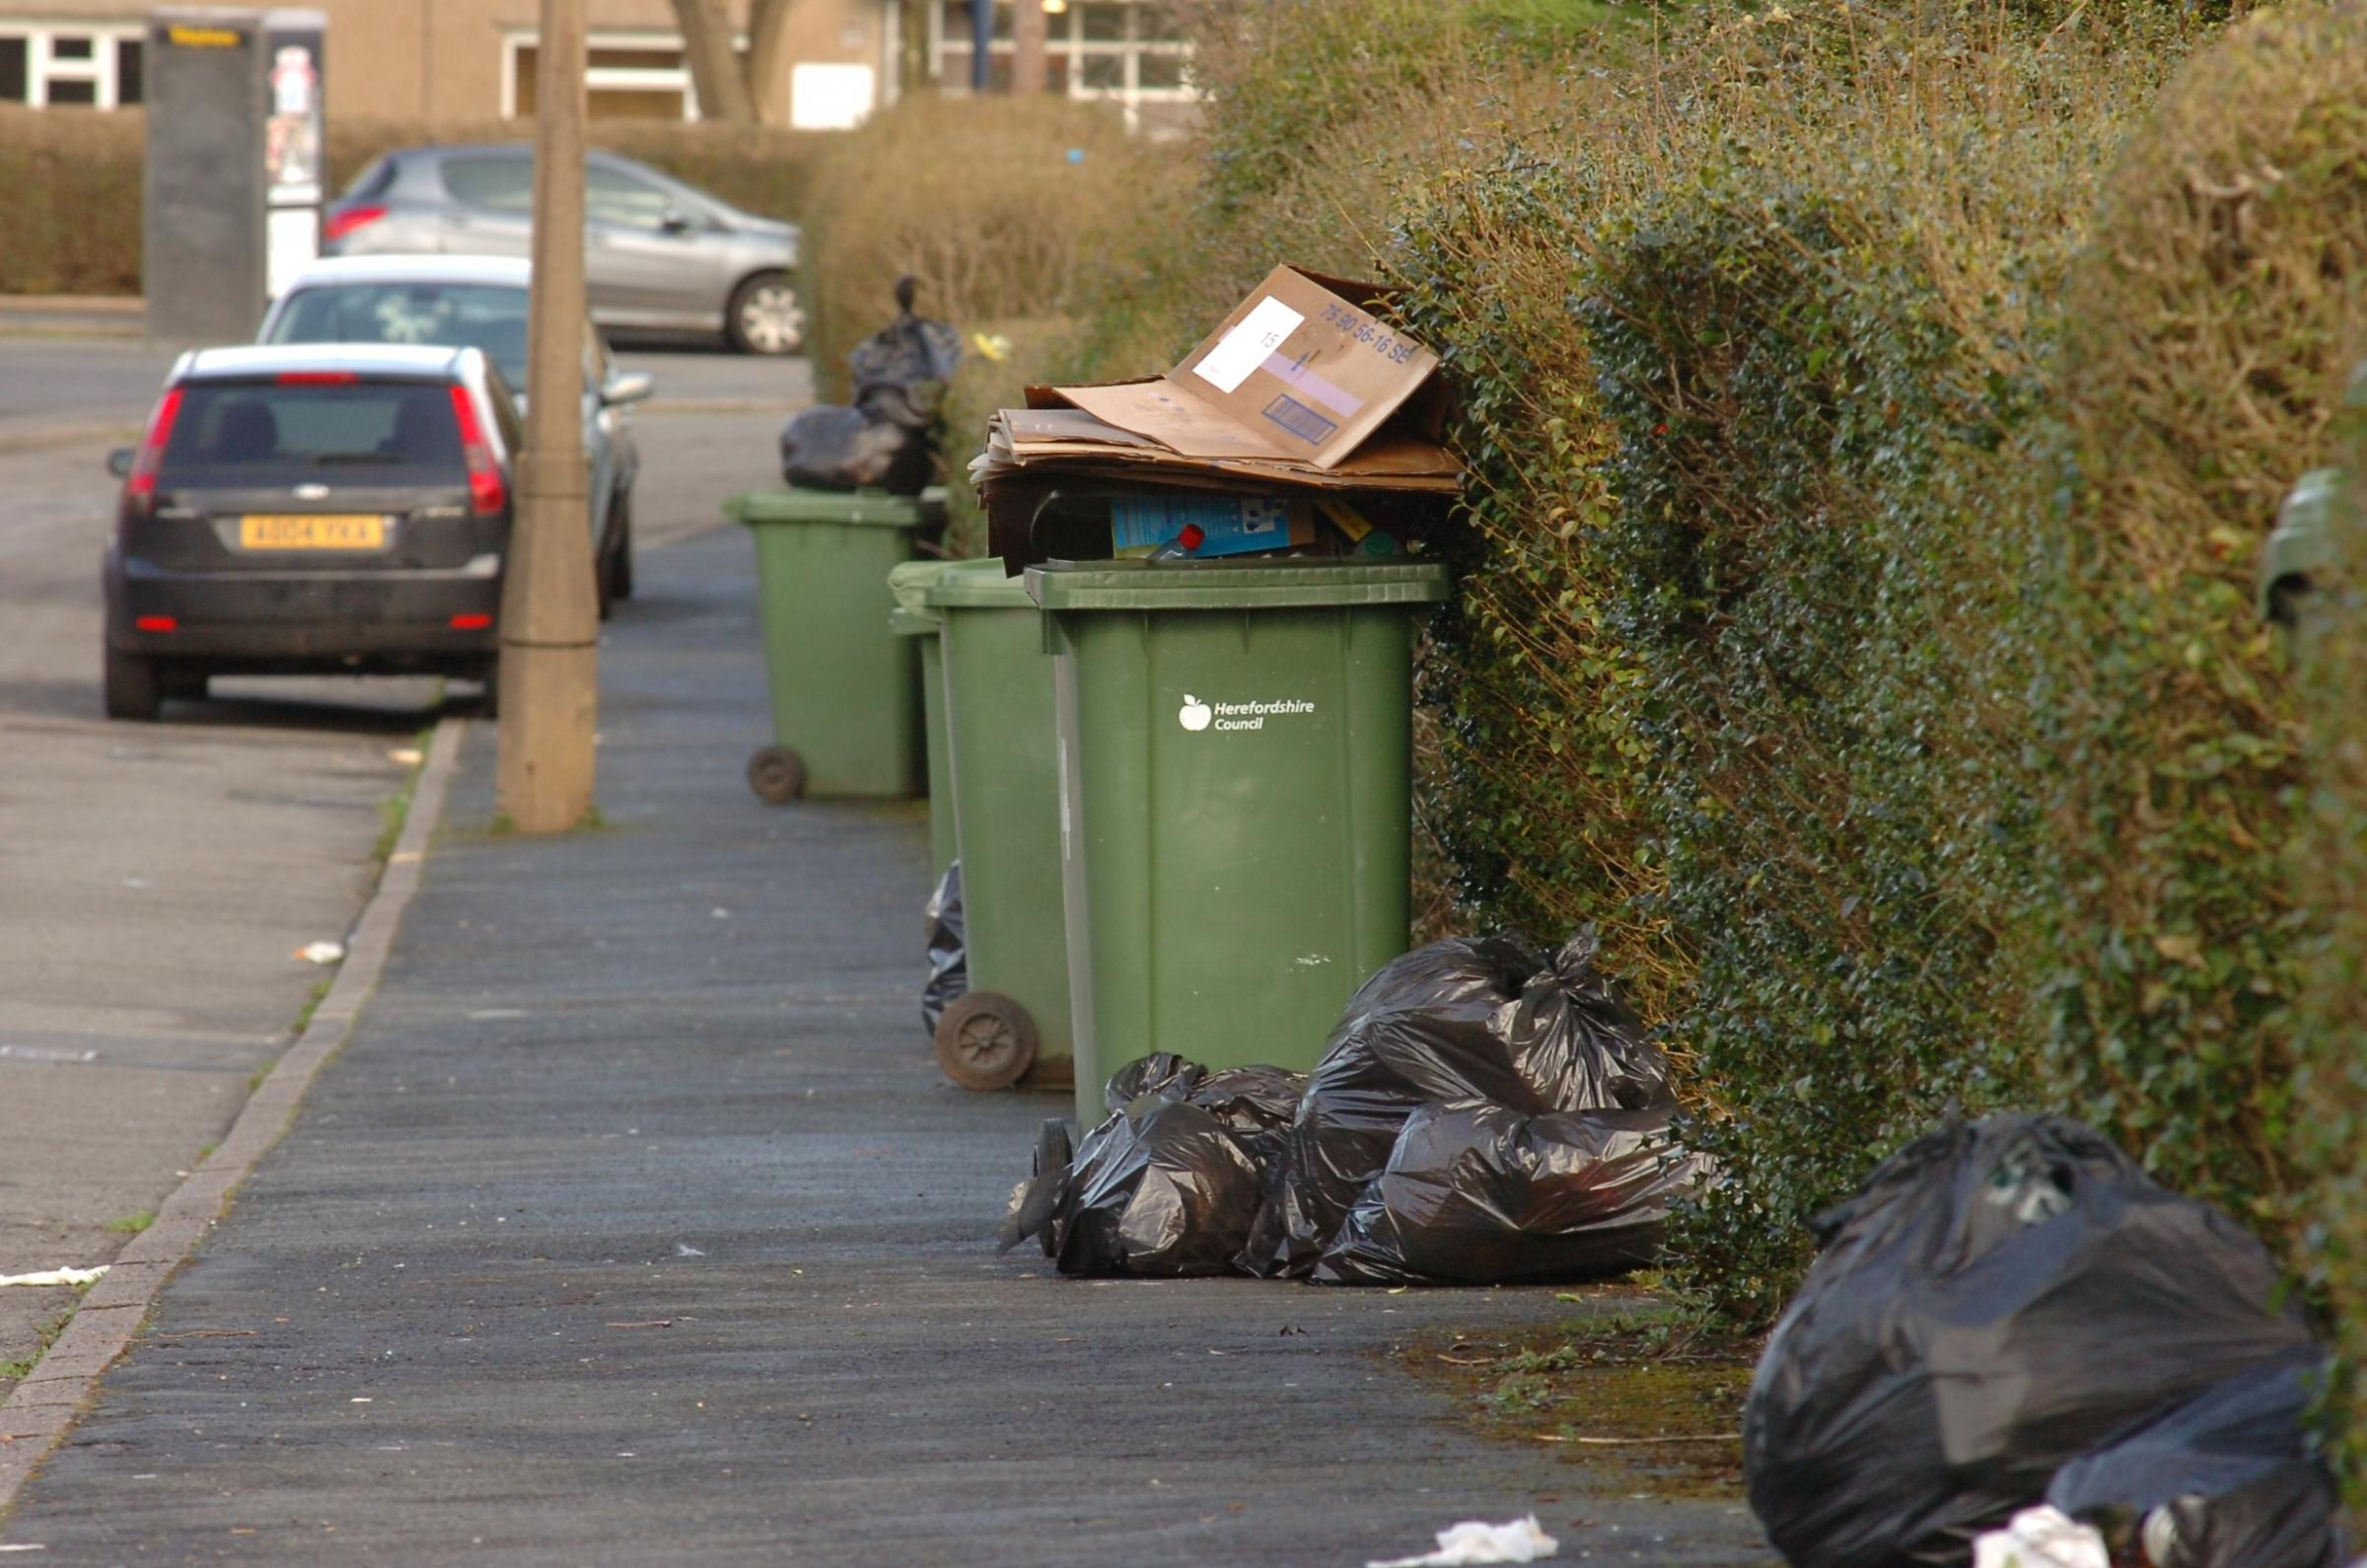 People's rubbish to be screened for recyclables